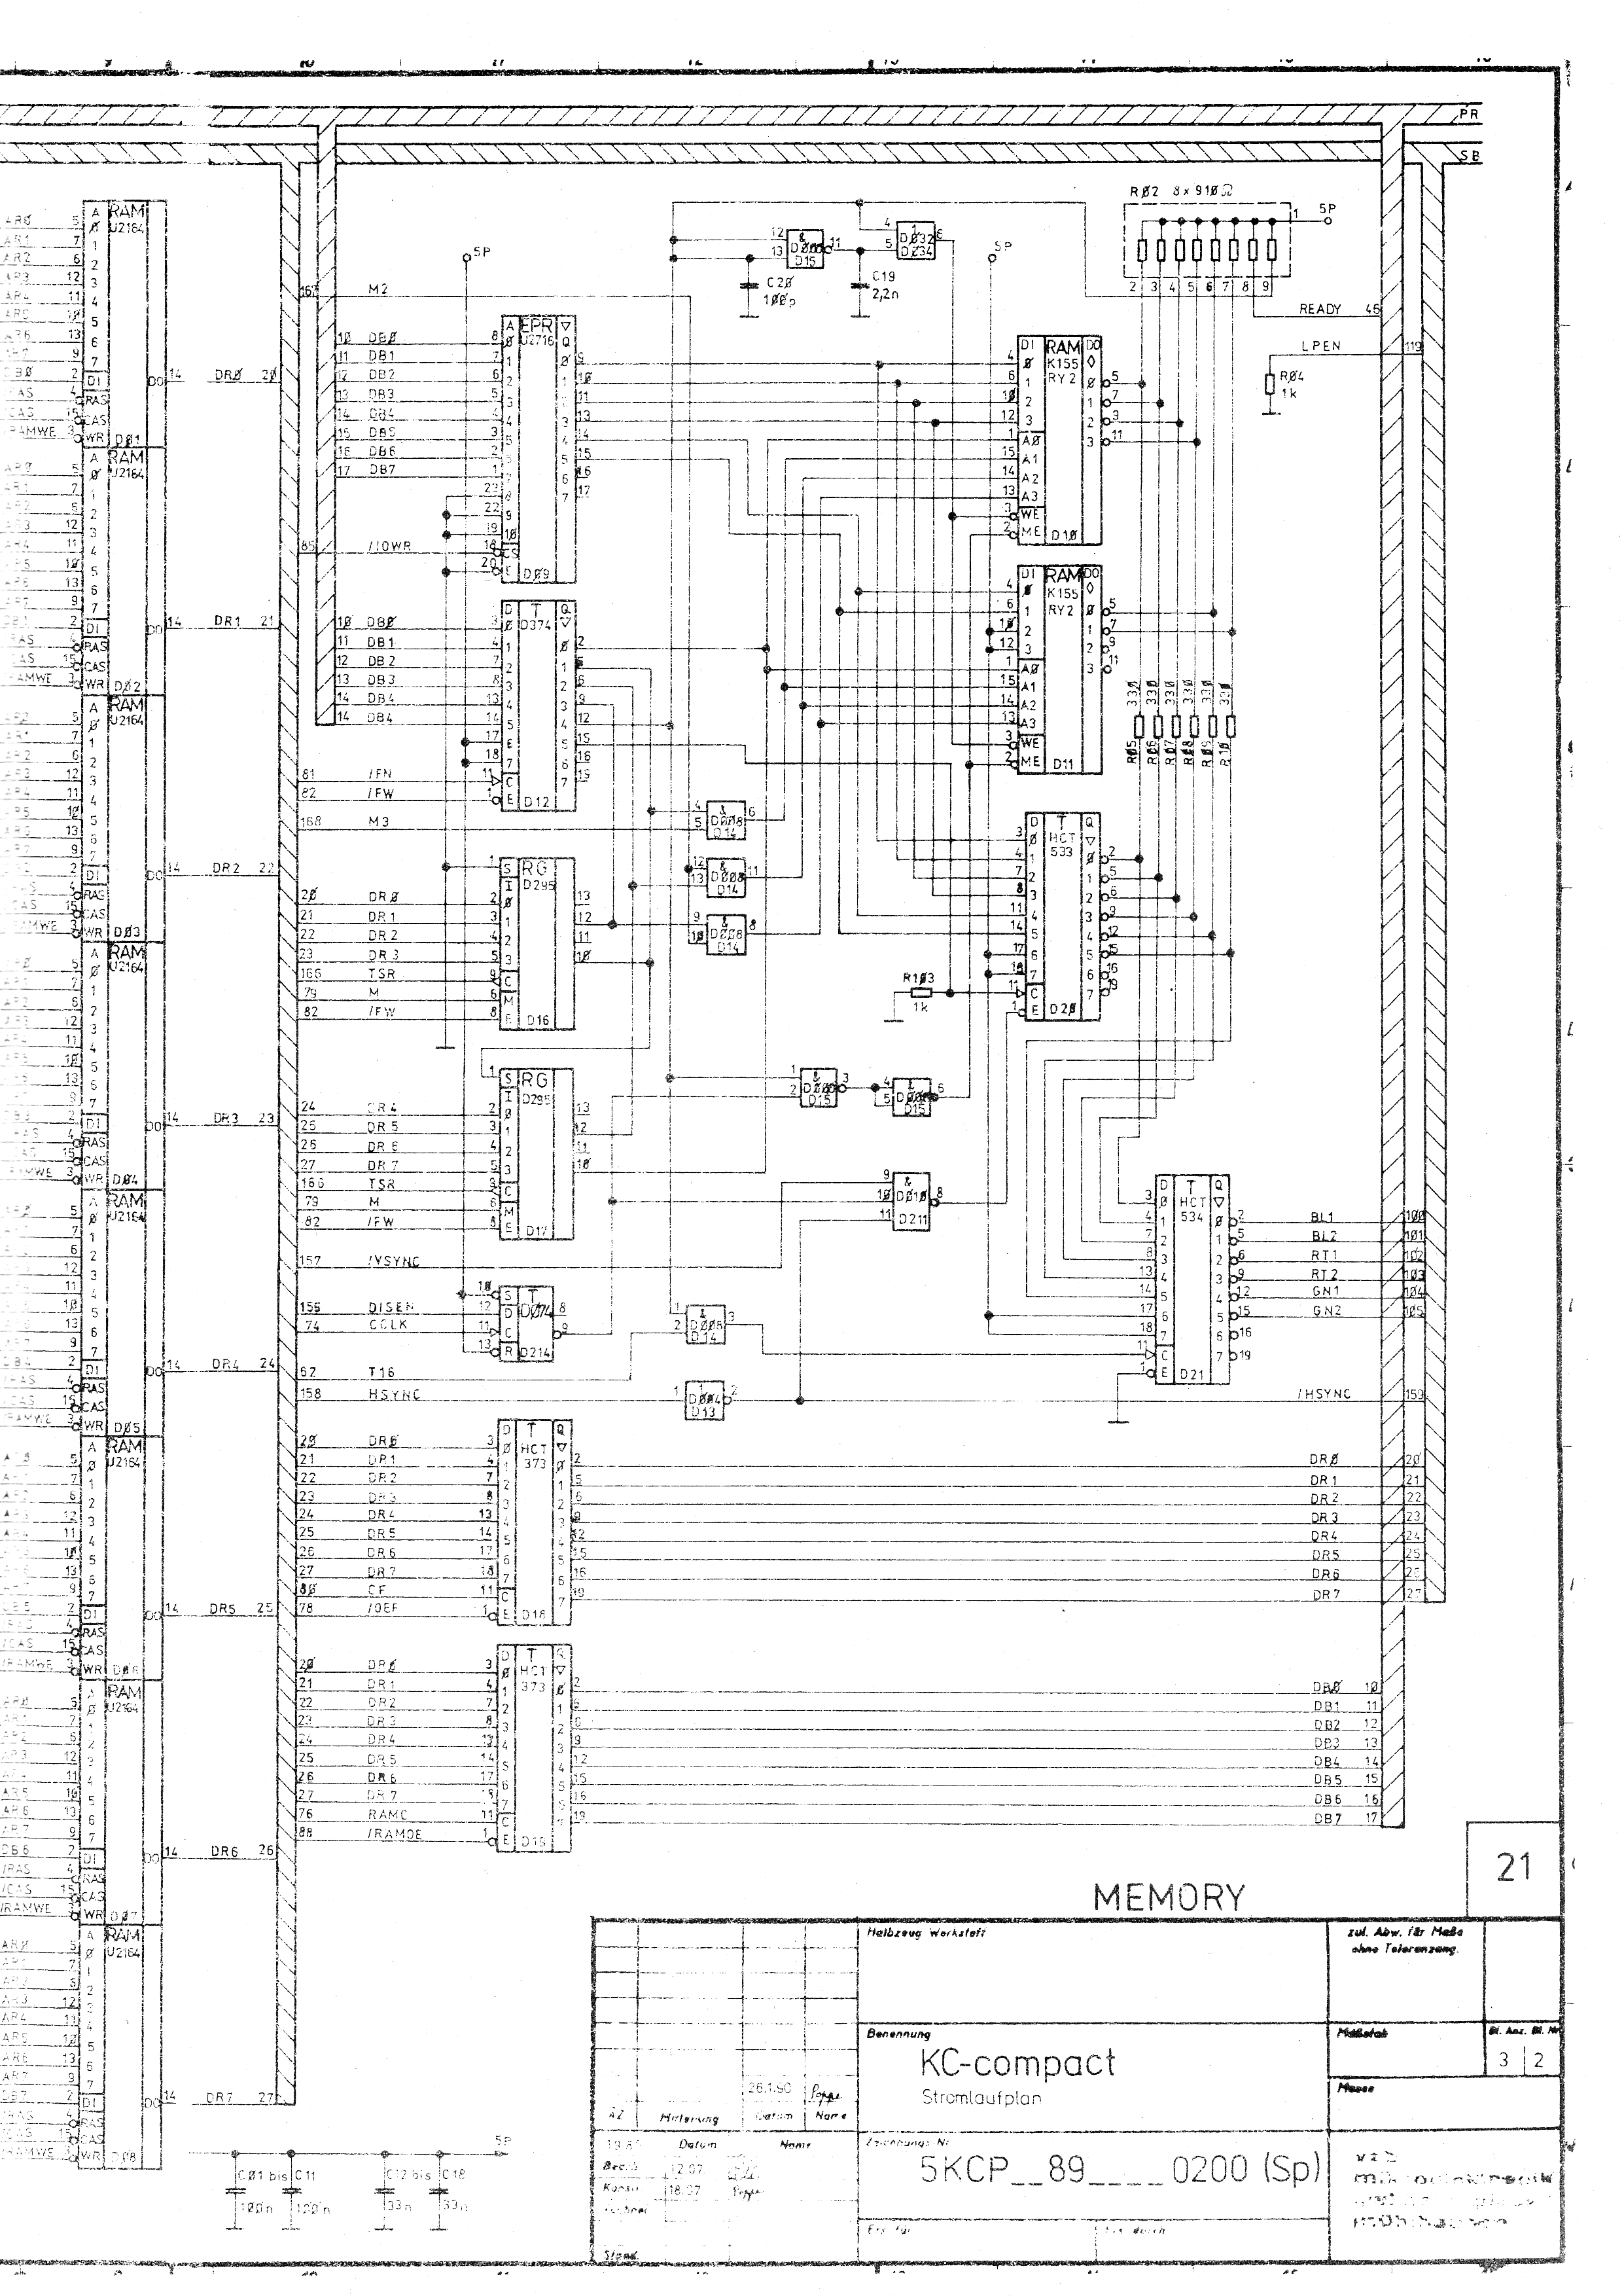 kevarchive cpcwiki schematic memory or xt 600 wiring diagram power sr20 wiring into anything s13 sr20det wiring diagramsanyo tv wiring diagram